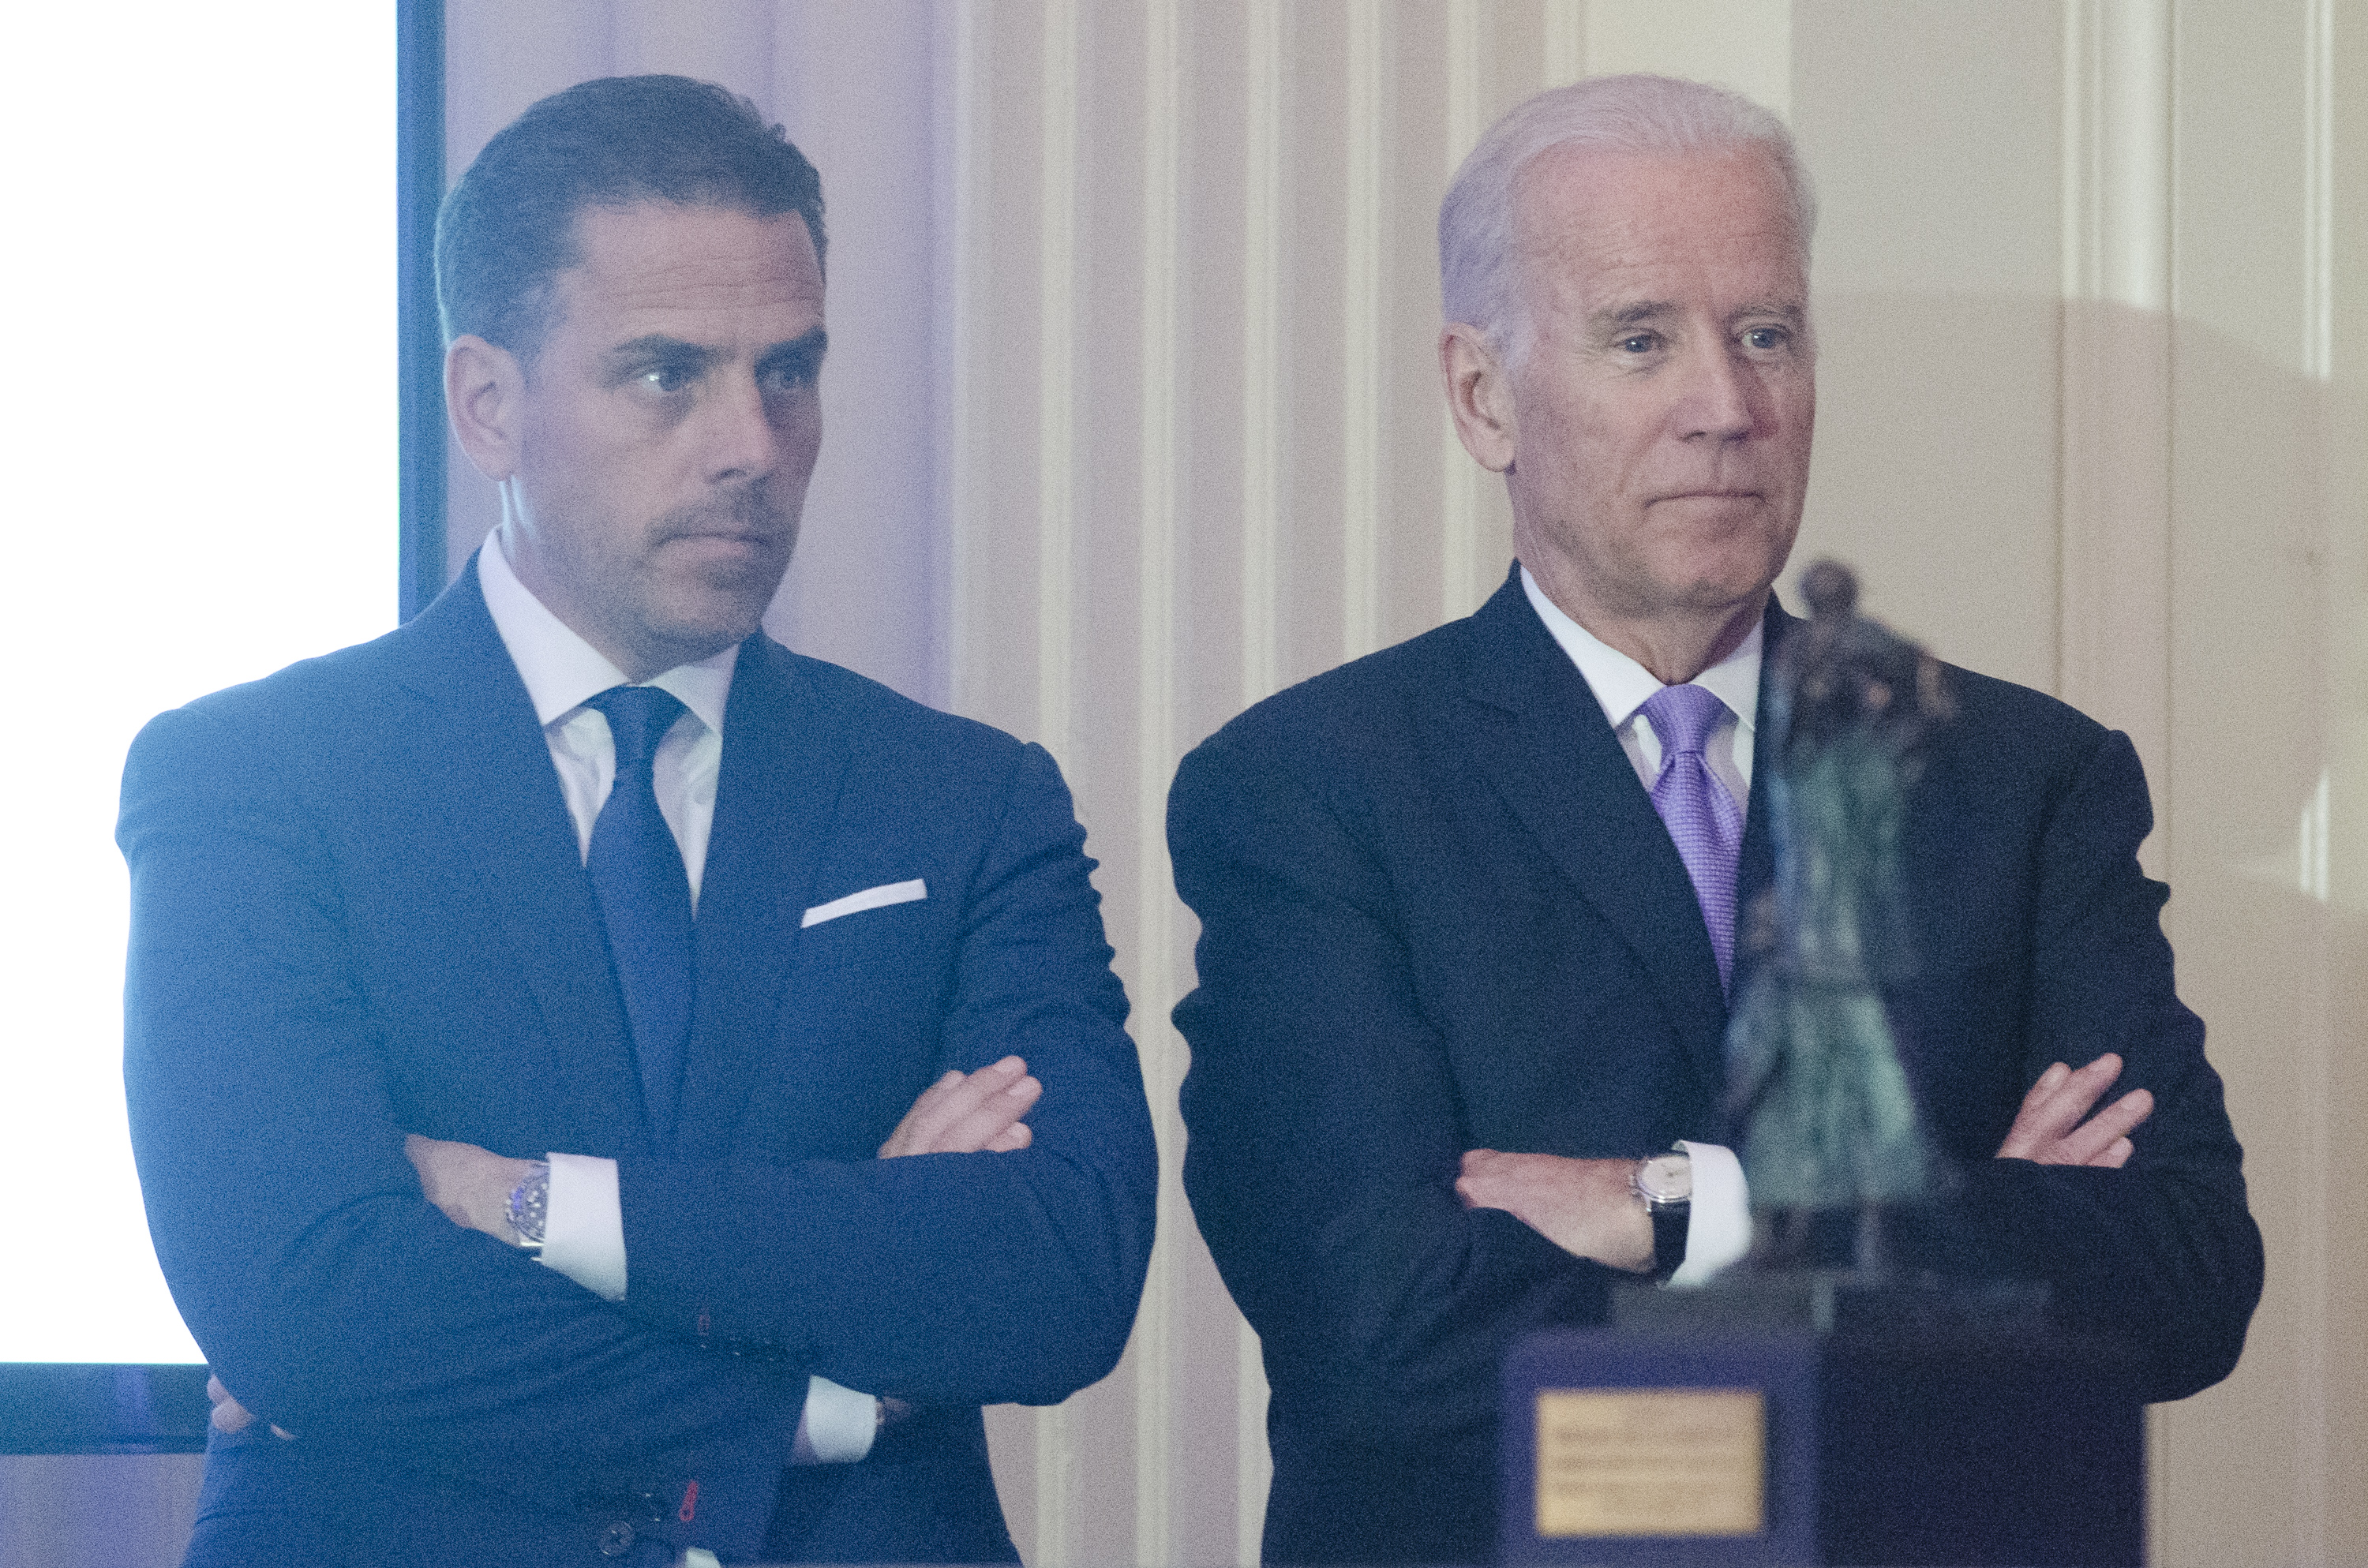 Biden denies family profited from his name, says 'no basis' to Hunter Biden story